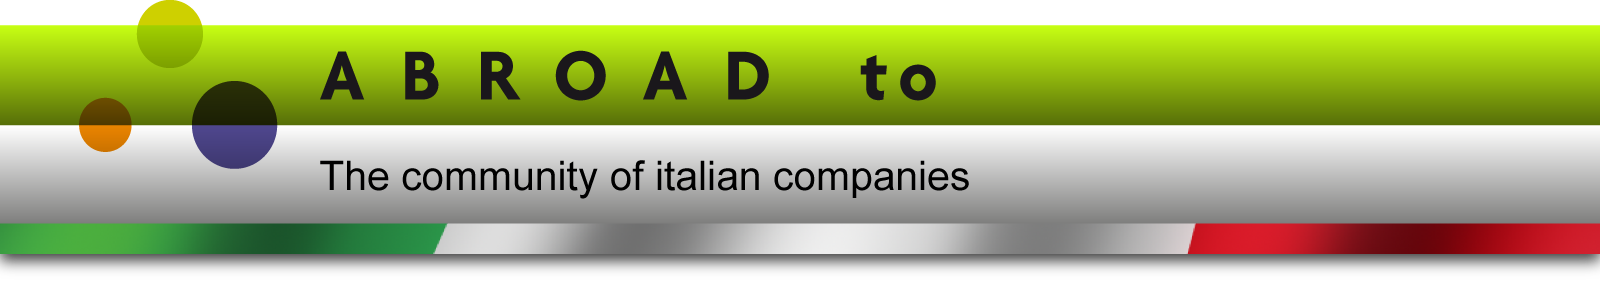 Abroad to - The community of italian companies